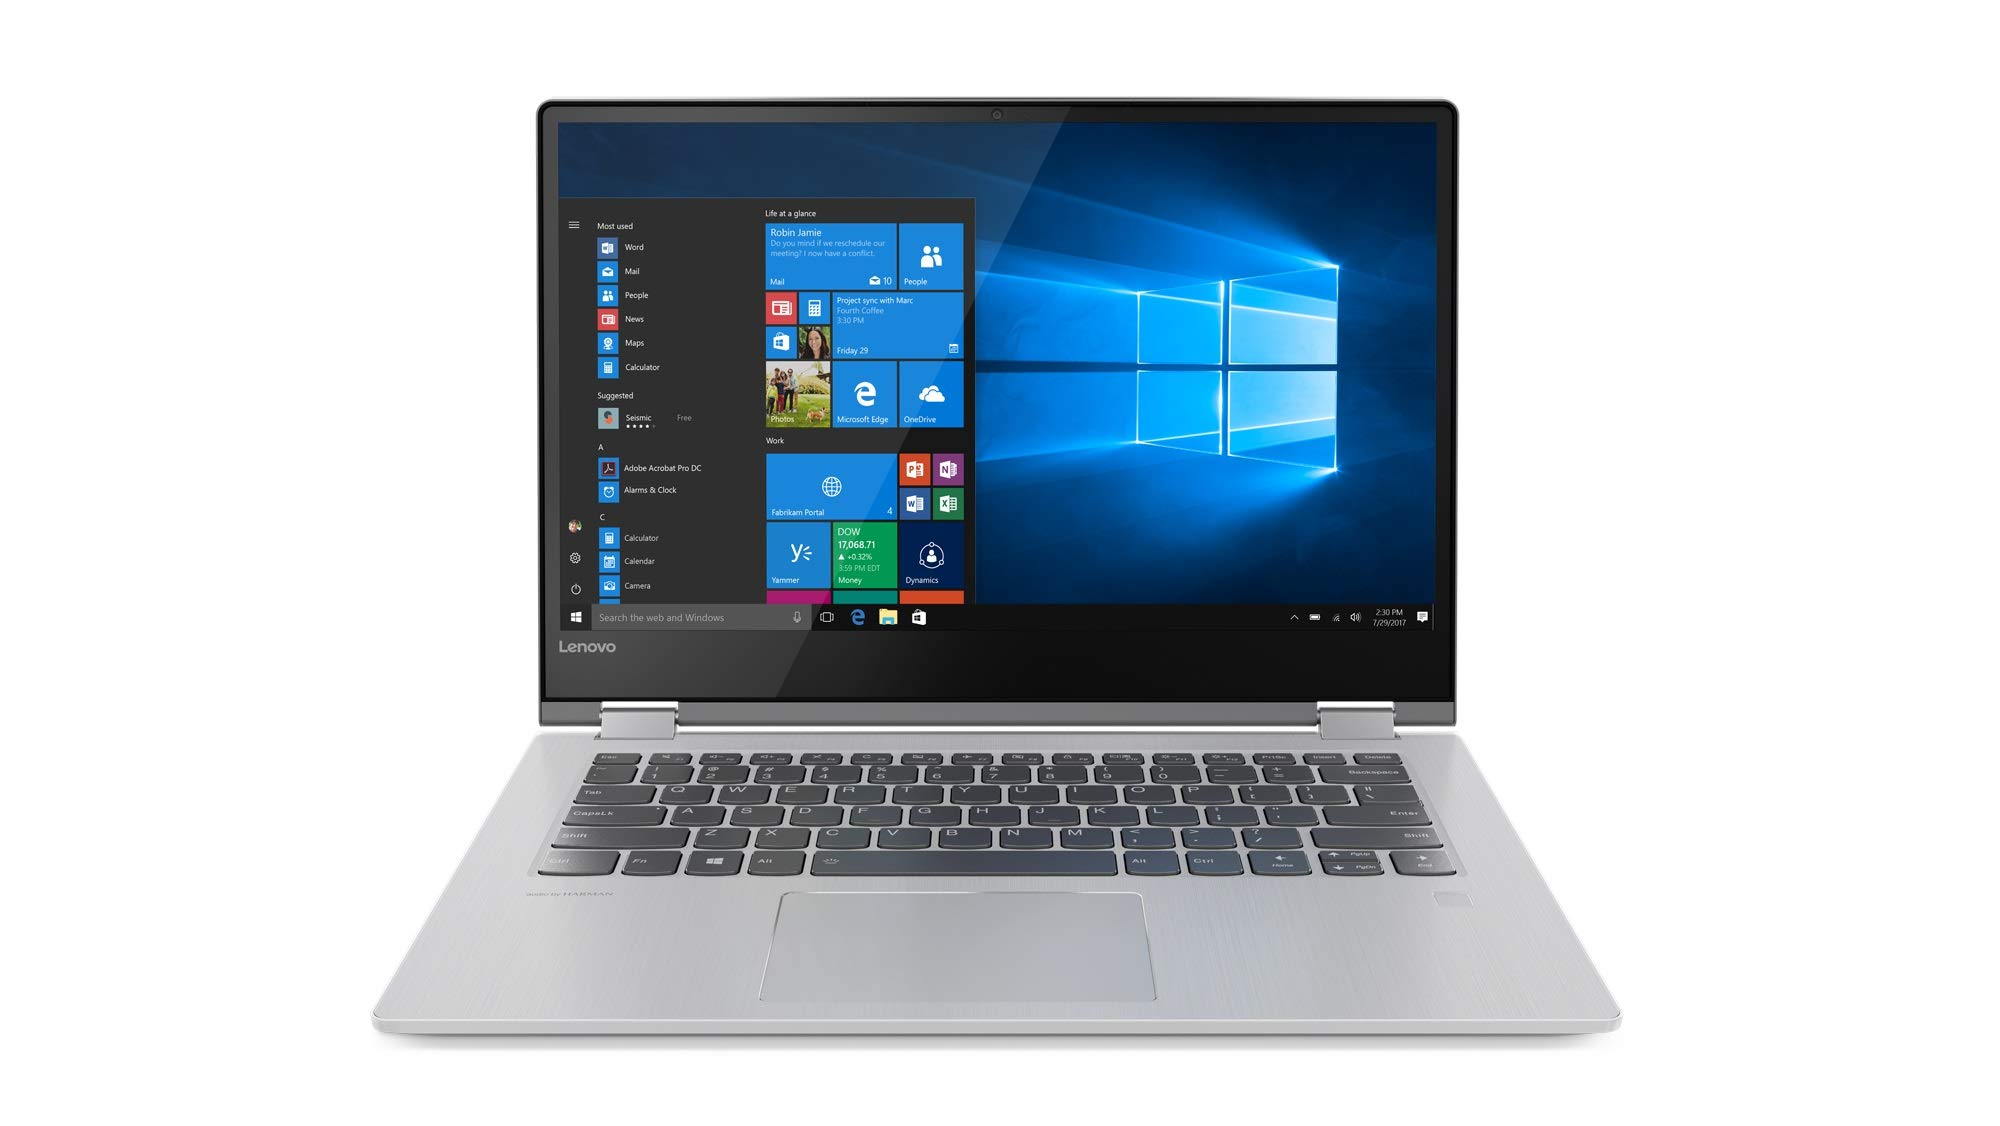 Lenovo Yoga 530-14ARR – Portátil táctil Convertible de 14″ HD (Intel Core i3-7020U, 4GB de RAM, 128GB de SSD, Windows 10) Gris – Teclado QWERTY Español